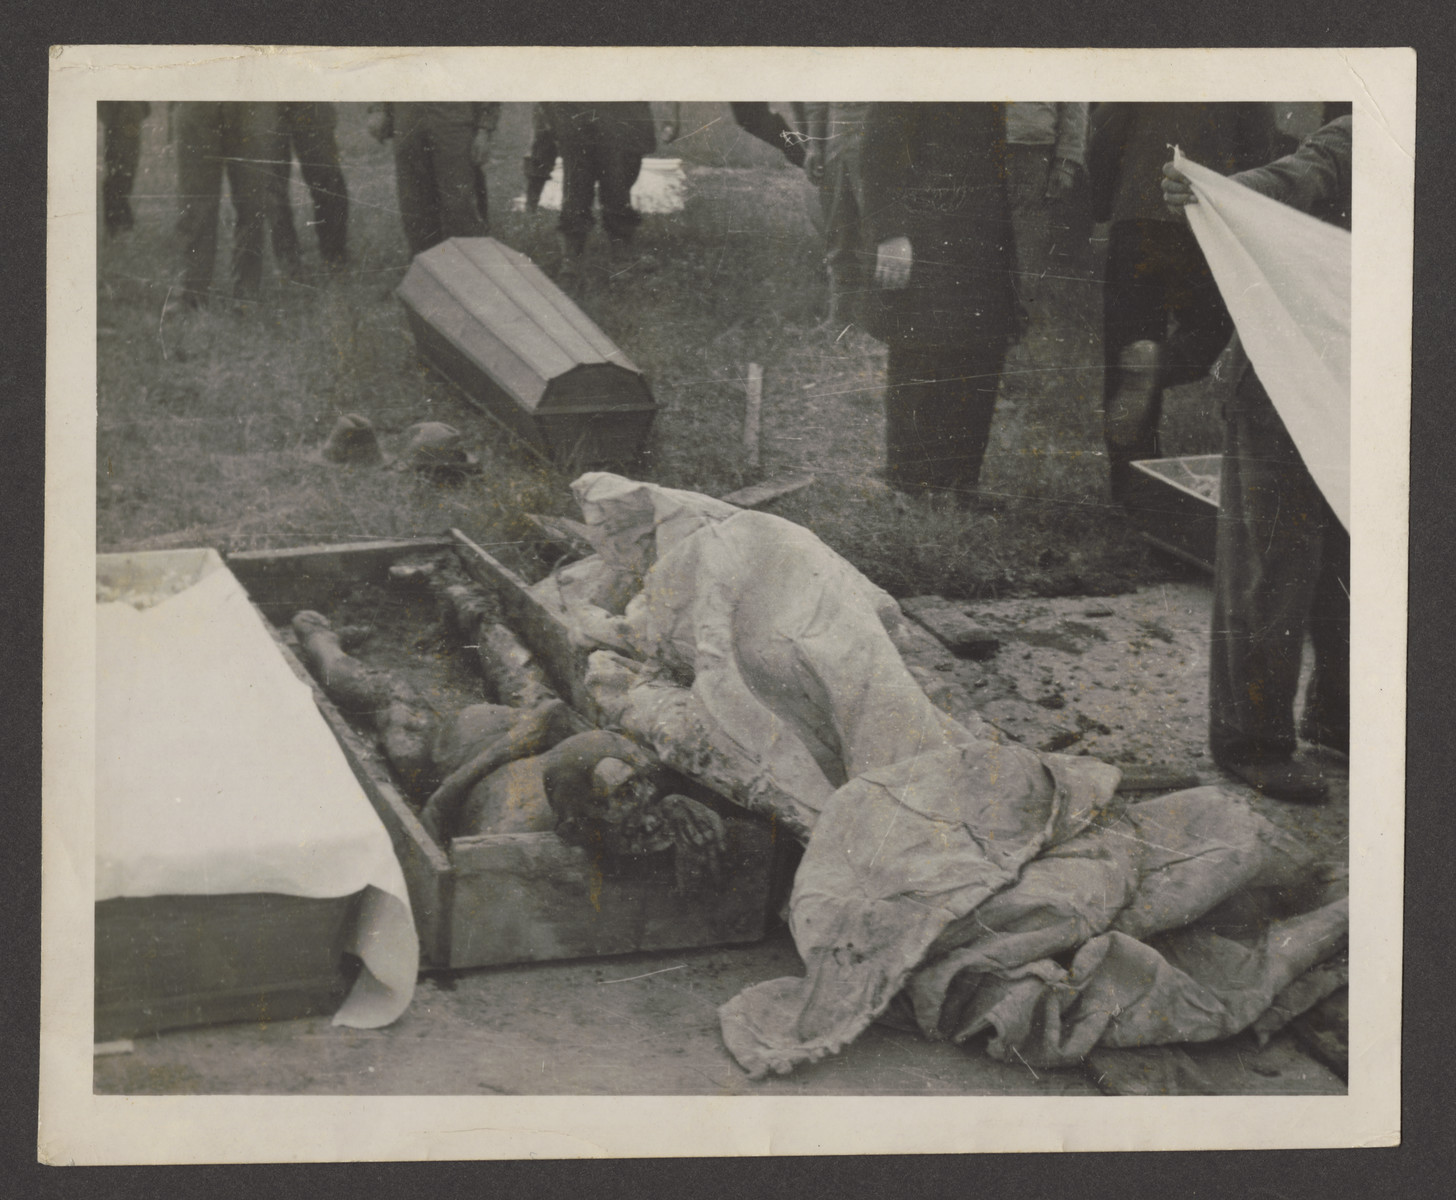 A corpse exhumed from a mass grave in Dachau lies in a rough coffin prior to reburial.